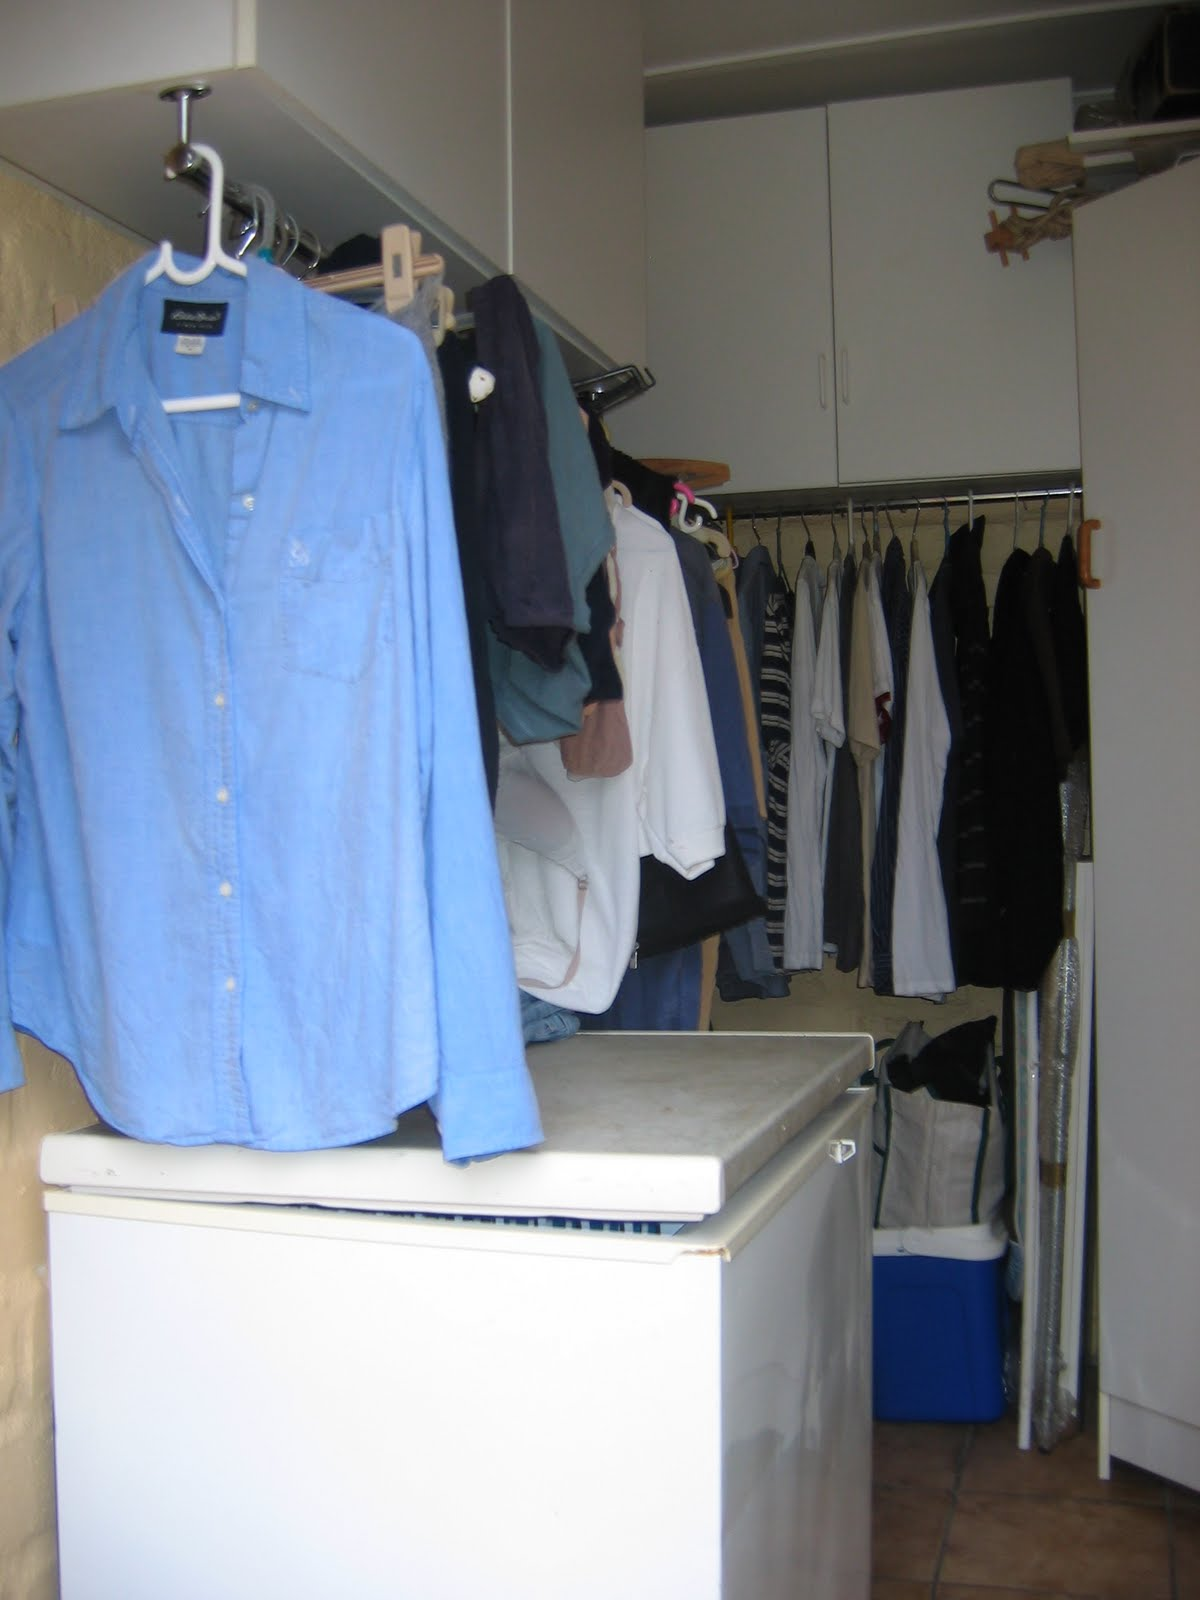 Why Do Clothes Dry At Room Temperature